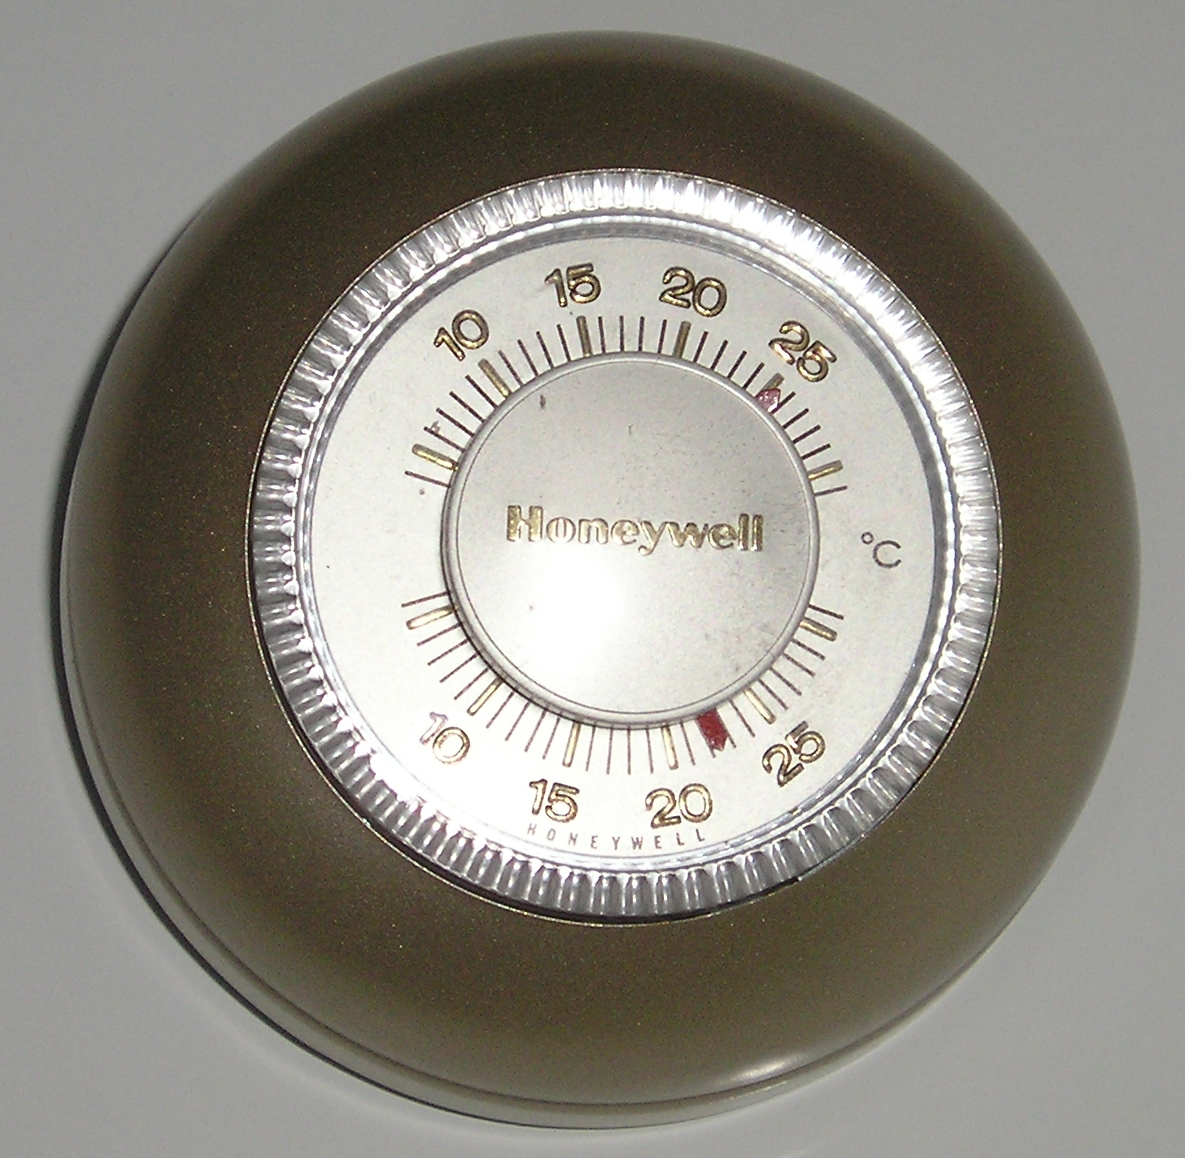 File:Honeywell thermostat.jpg & File:Honeywell thermostat.jpg - Wikimedia Commons